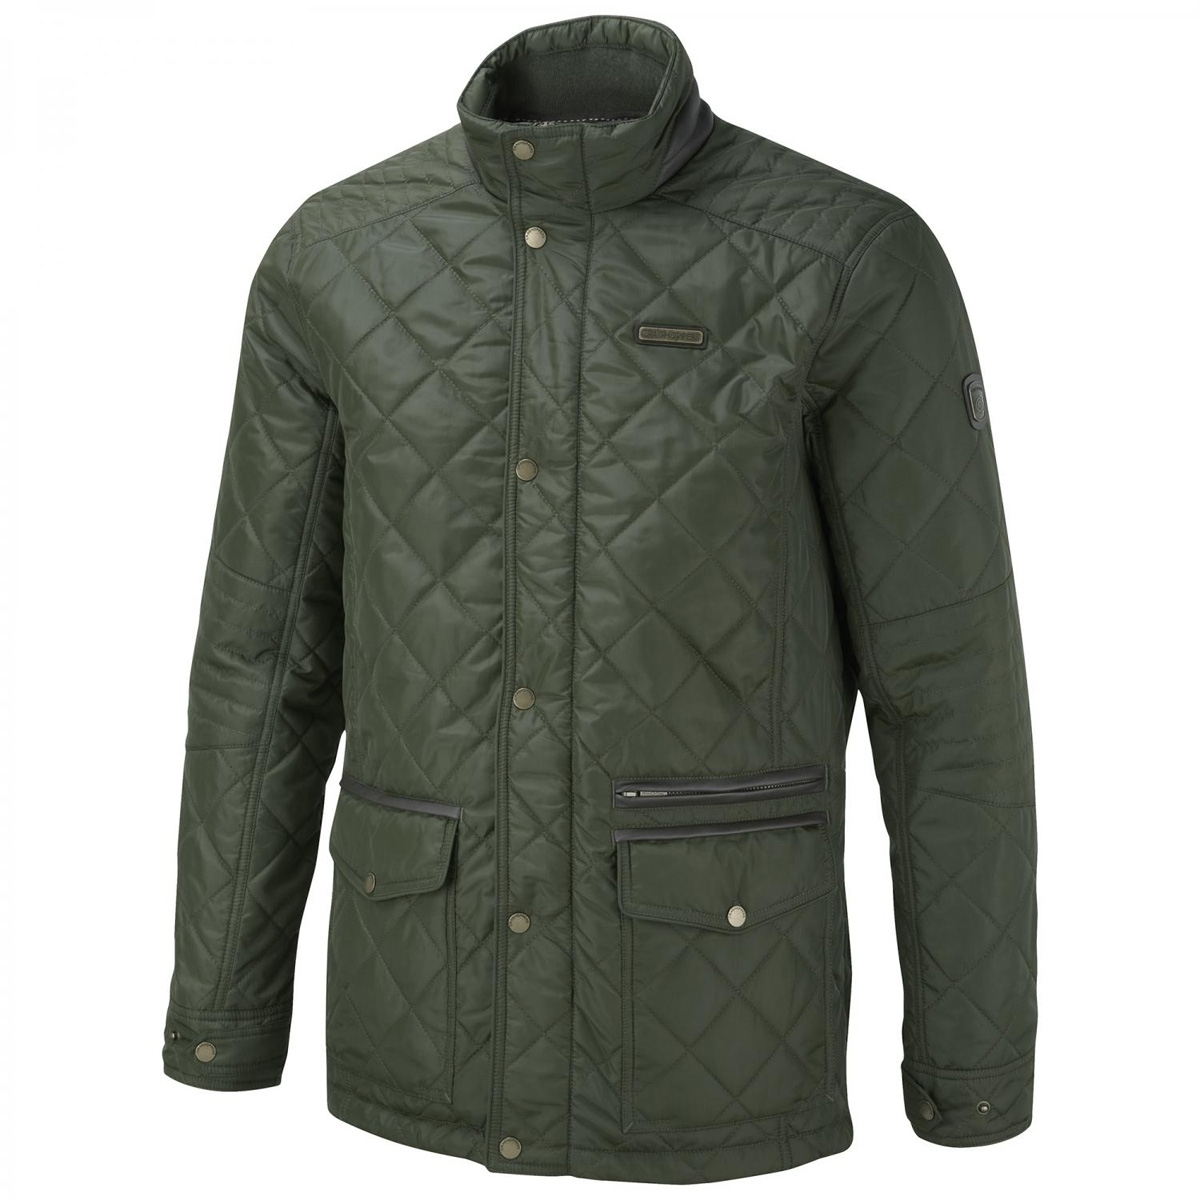 Craghoppers Allerton Quilted Jacket - Evergreen | Uttings.co.uk : craghoppers quilted jacket - Adamdwight.com